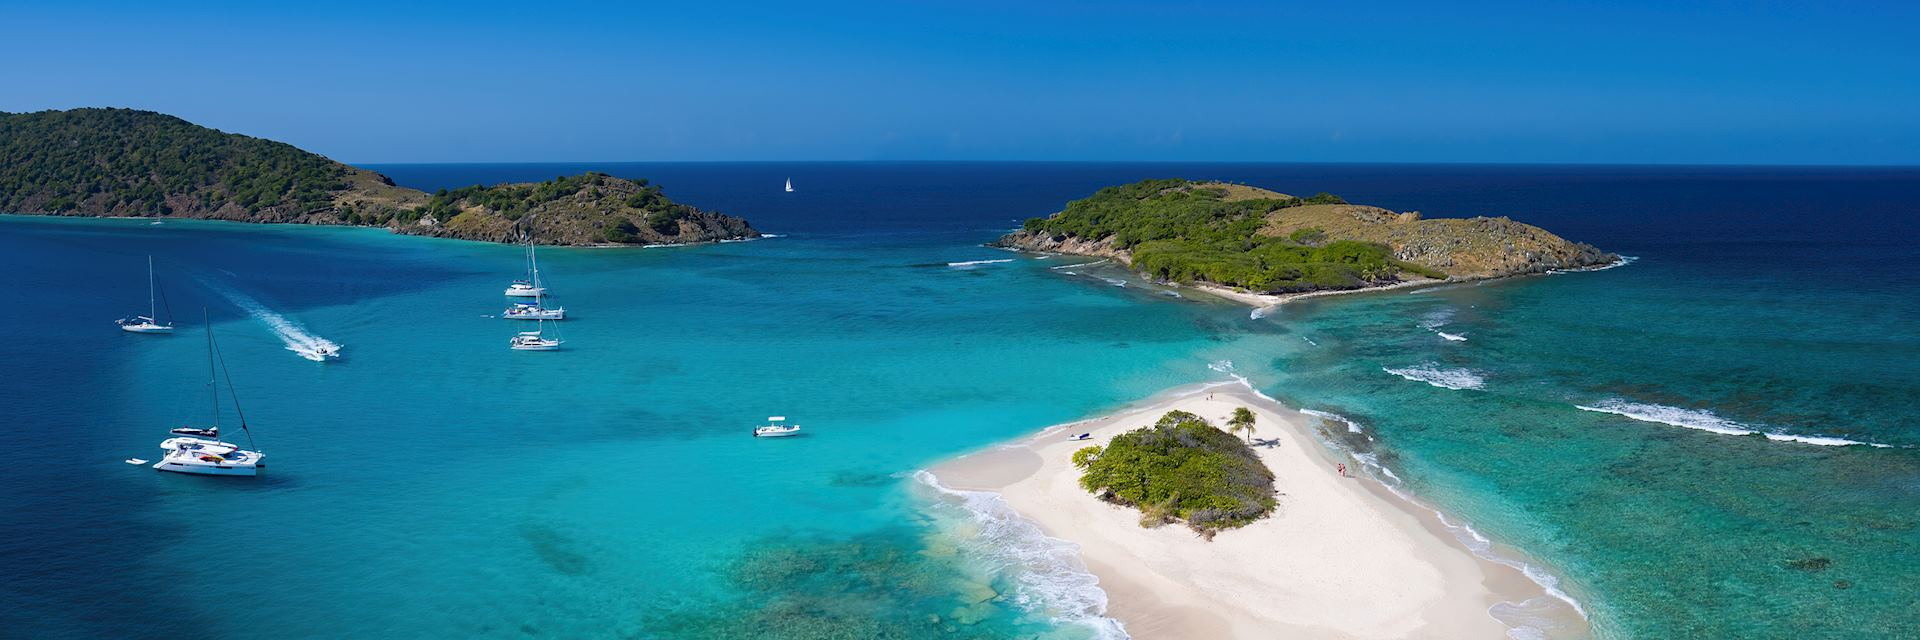 Sandy Spit Island in the British Virgin Islands